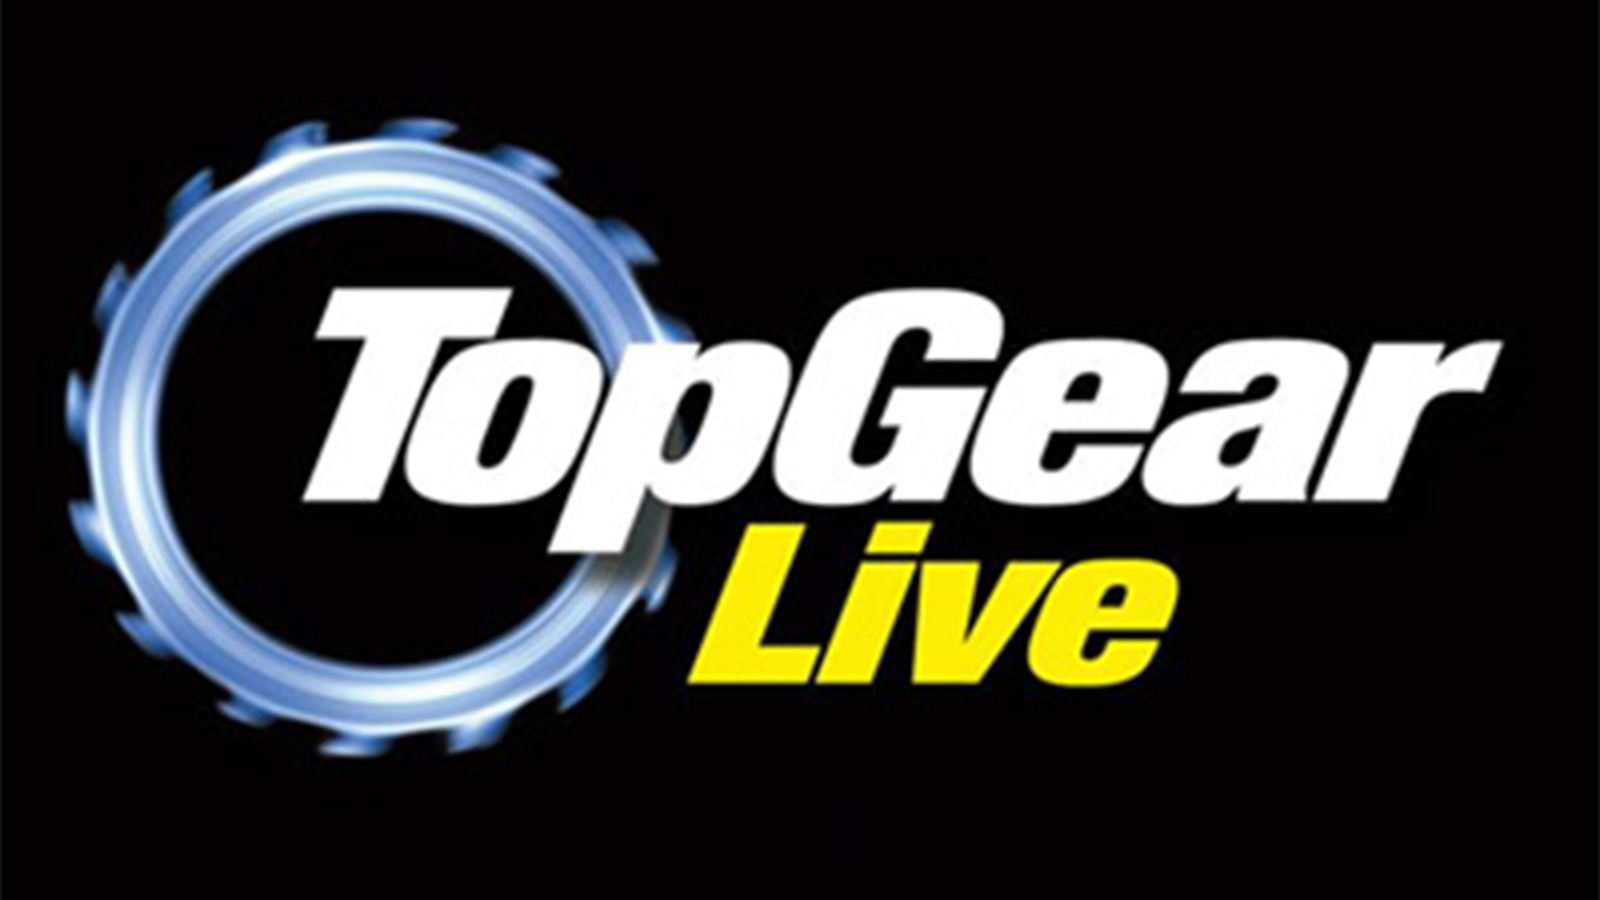 The ultimate Top Gear Live experience?